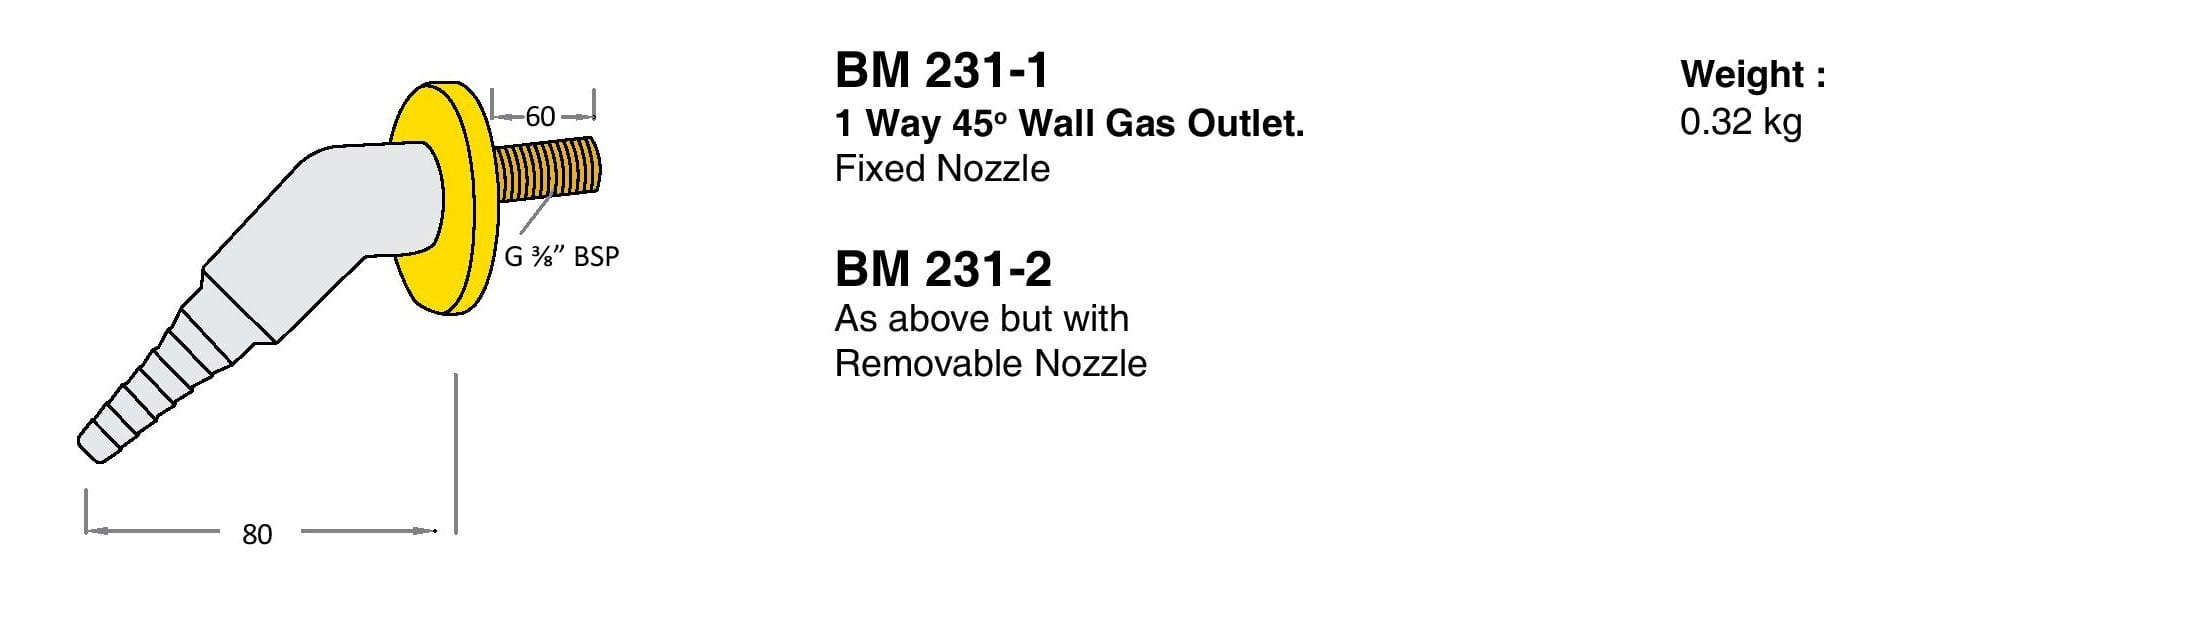 1 Way 45° Wall Gas Outlet Drawings